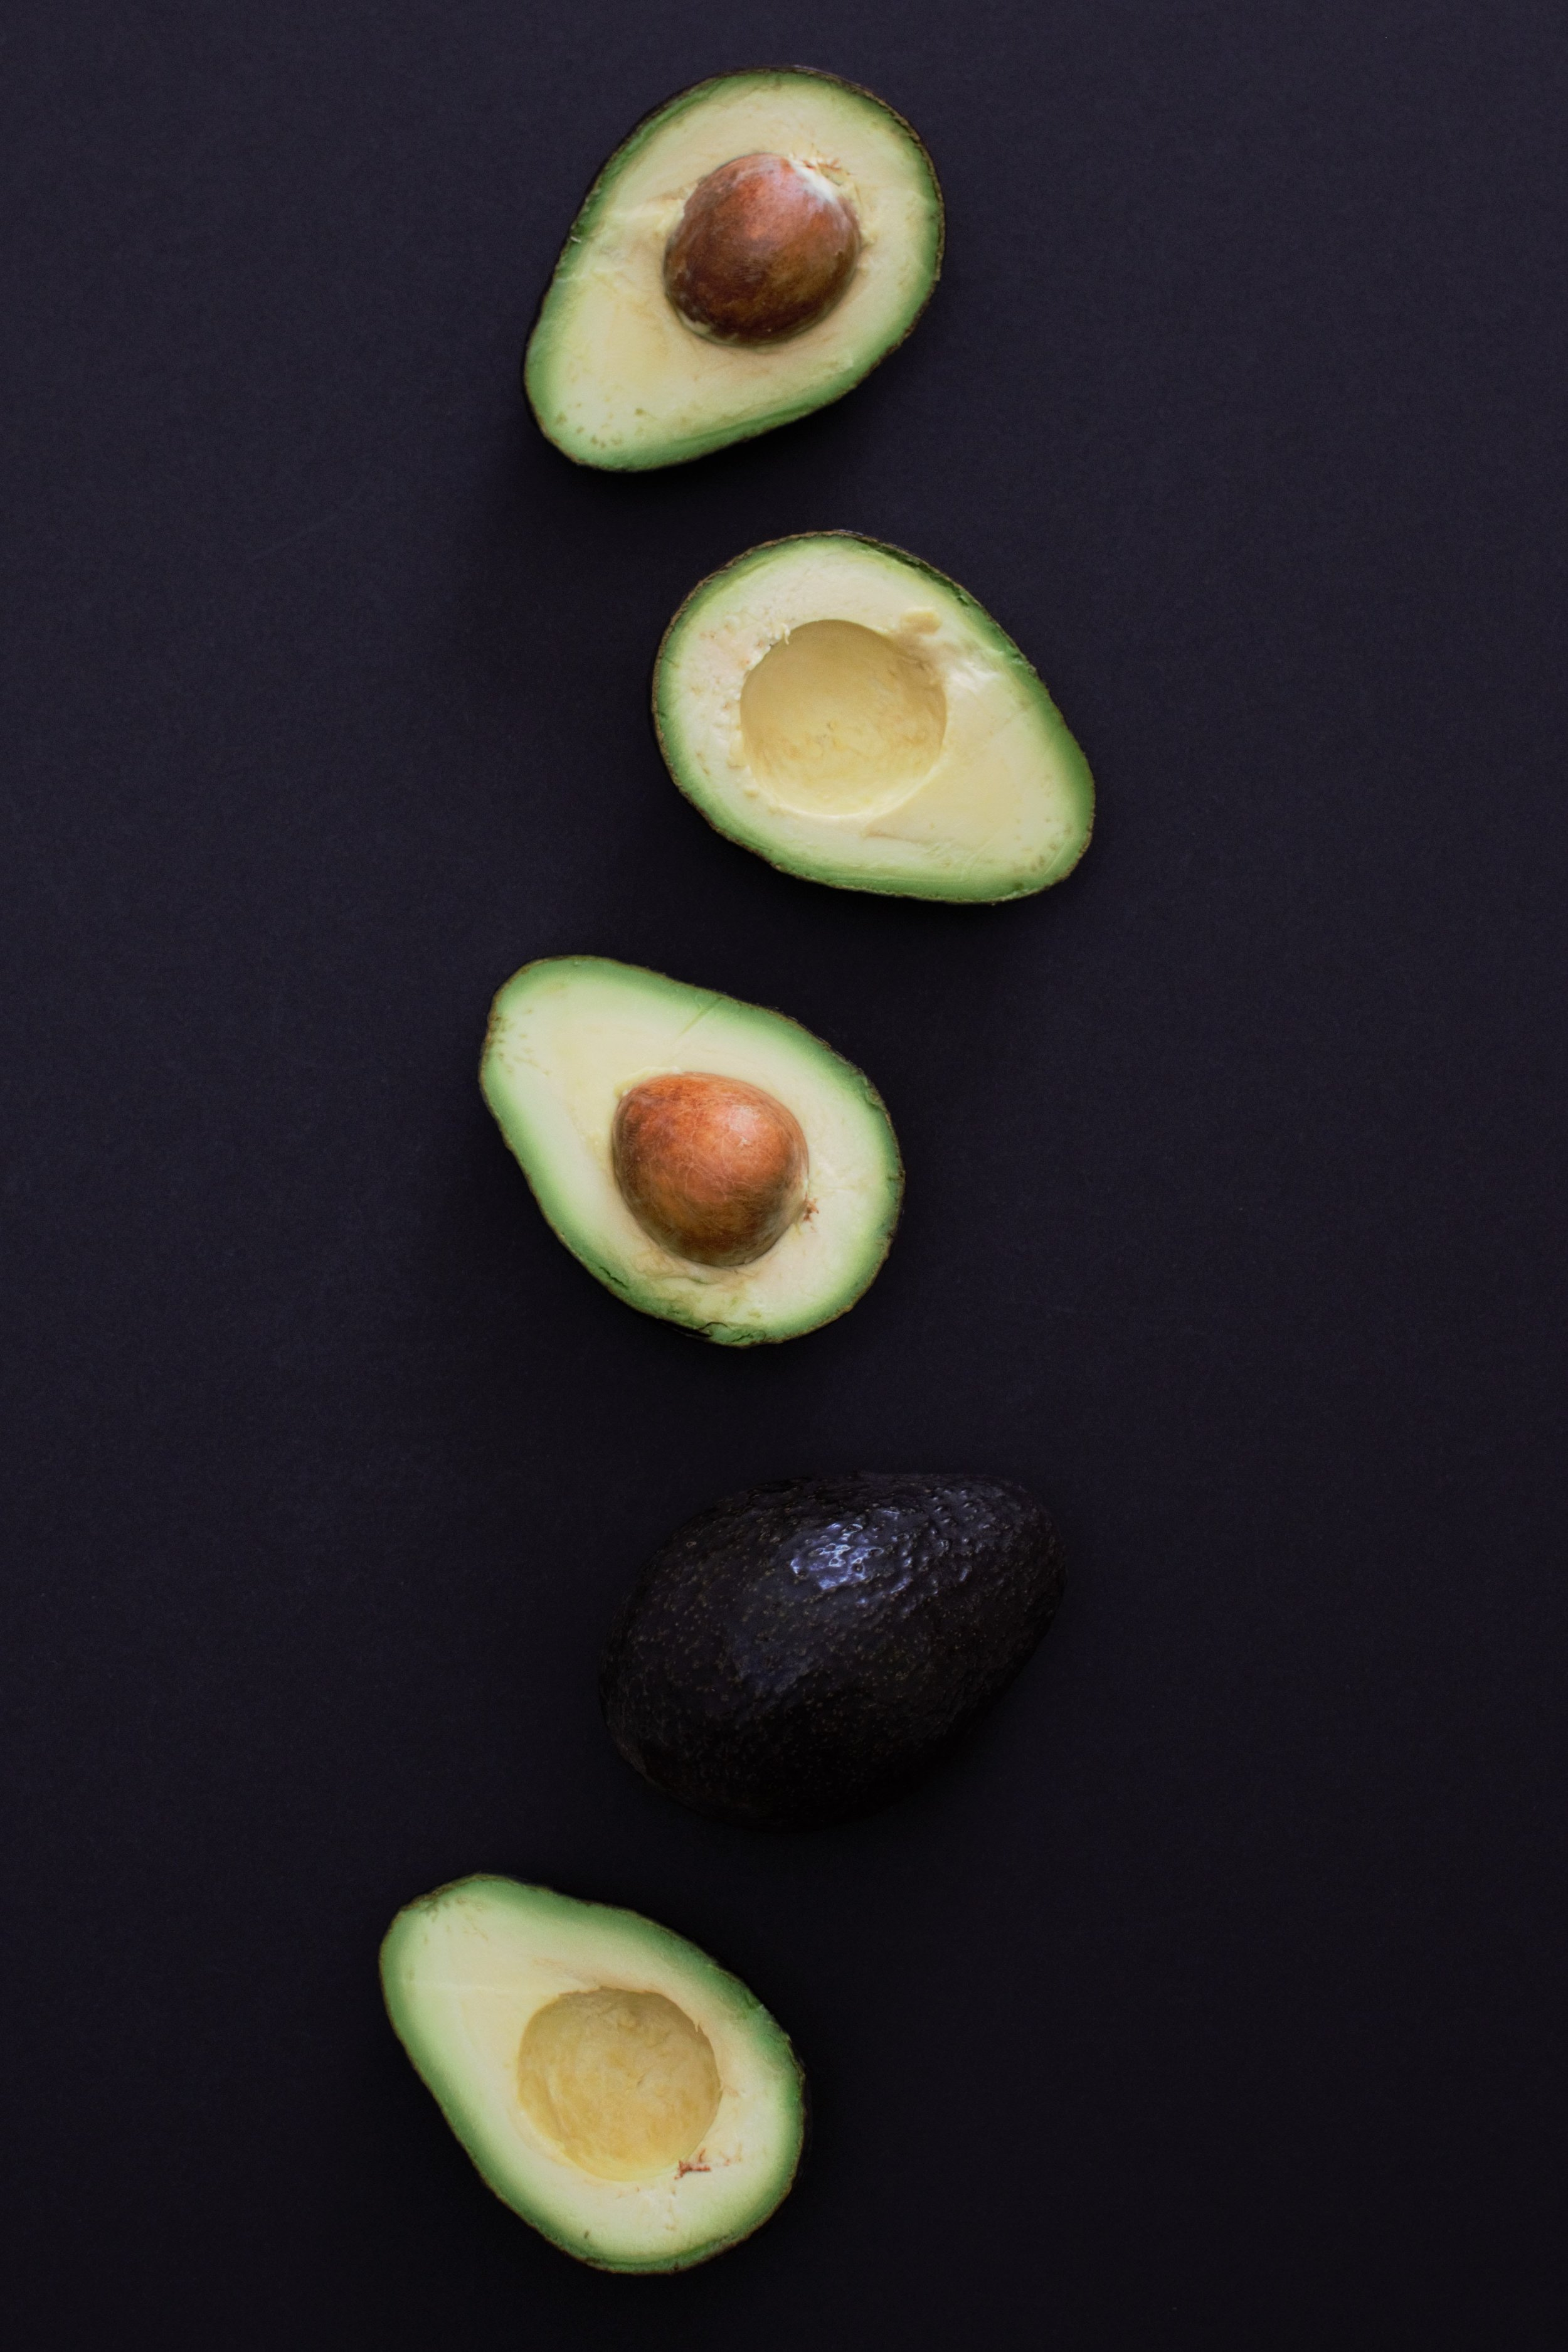 Avocados are a superfood. Healthy fat, B vitamins, magnesium…